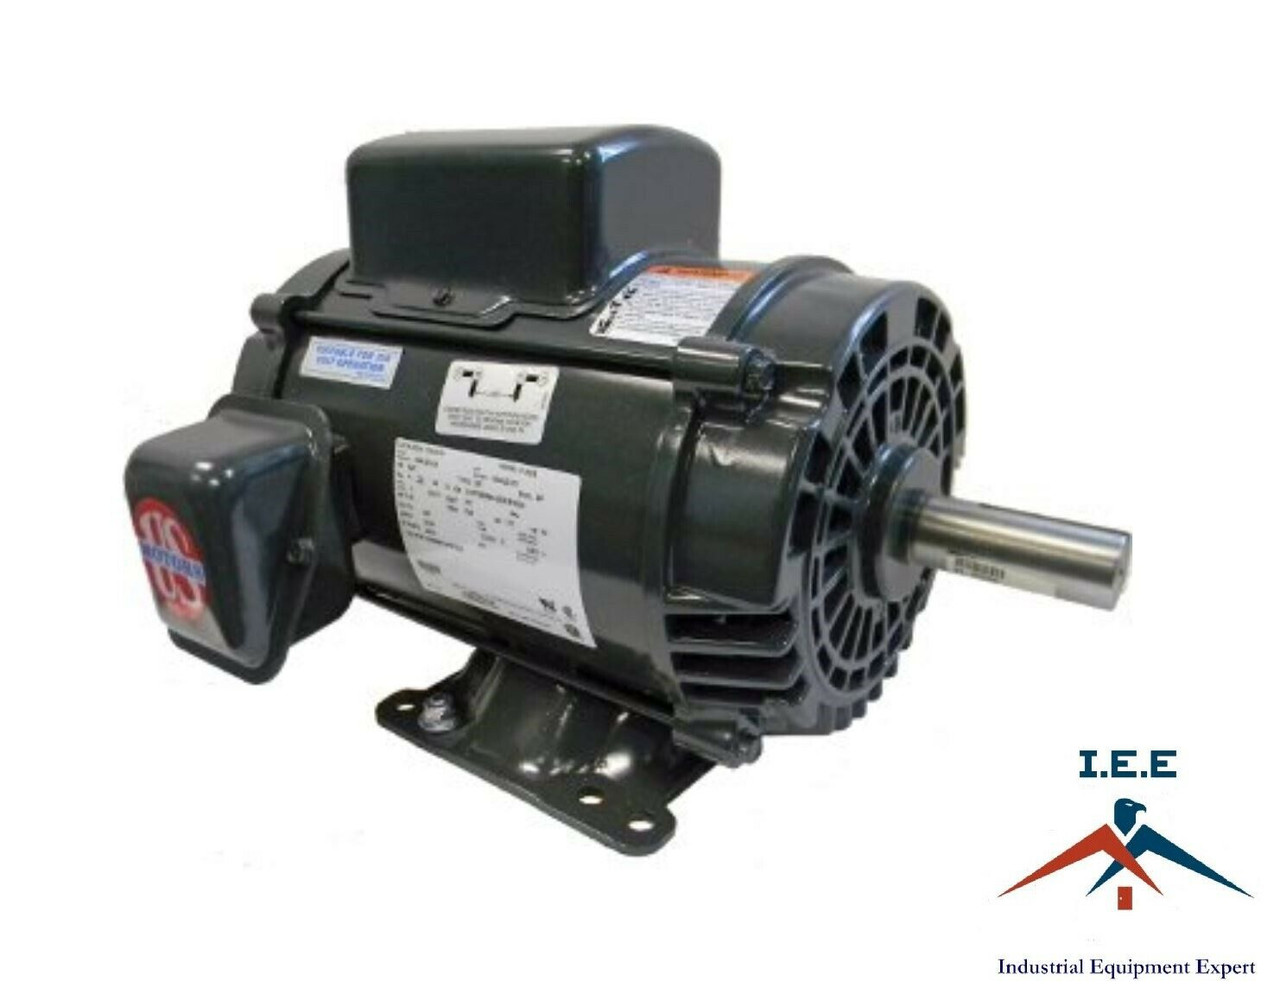 D5C2K18 5HP Air Compressor Electric Motor single phase 1725 RPM 184T on